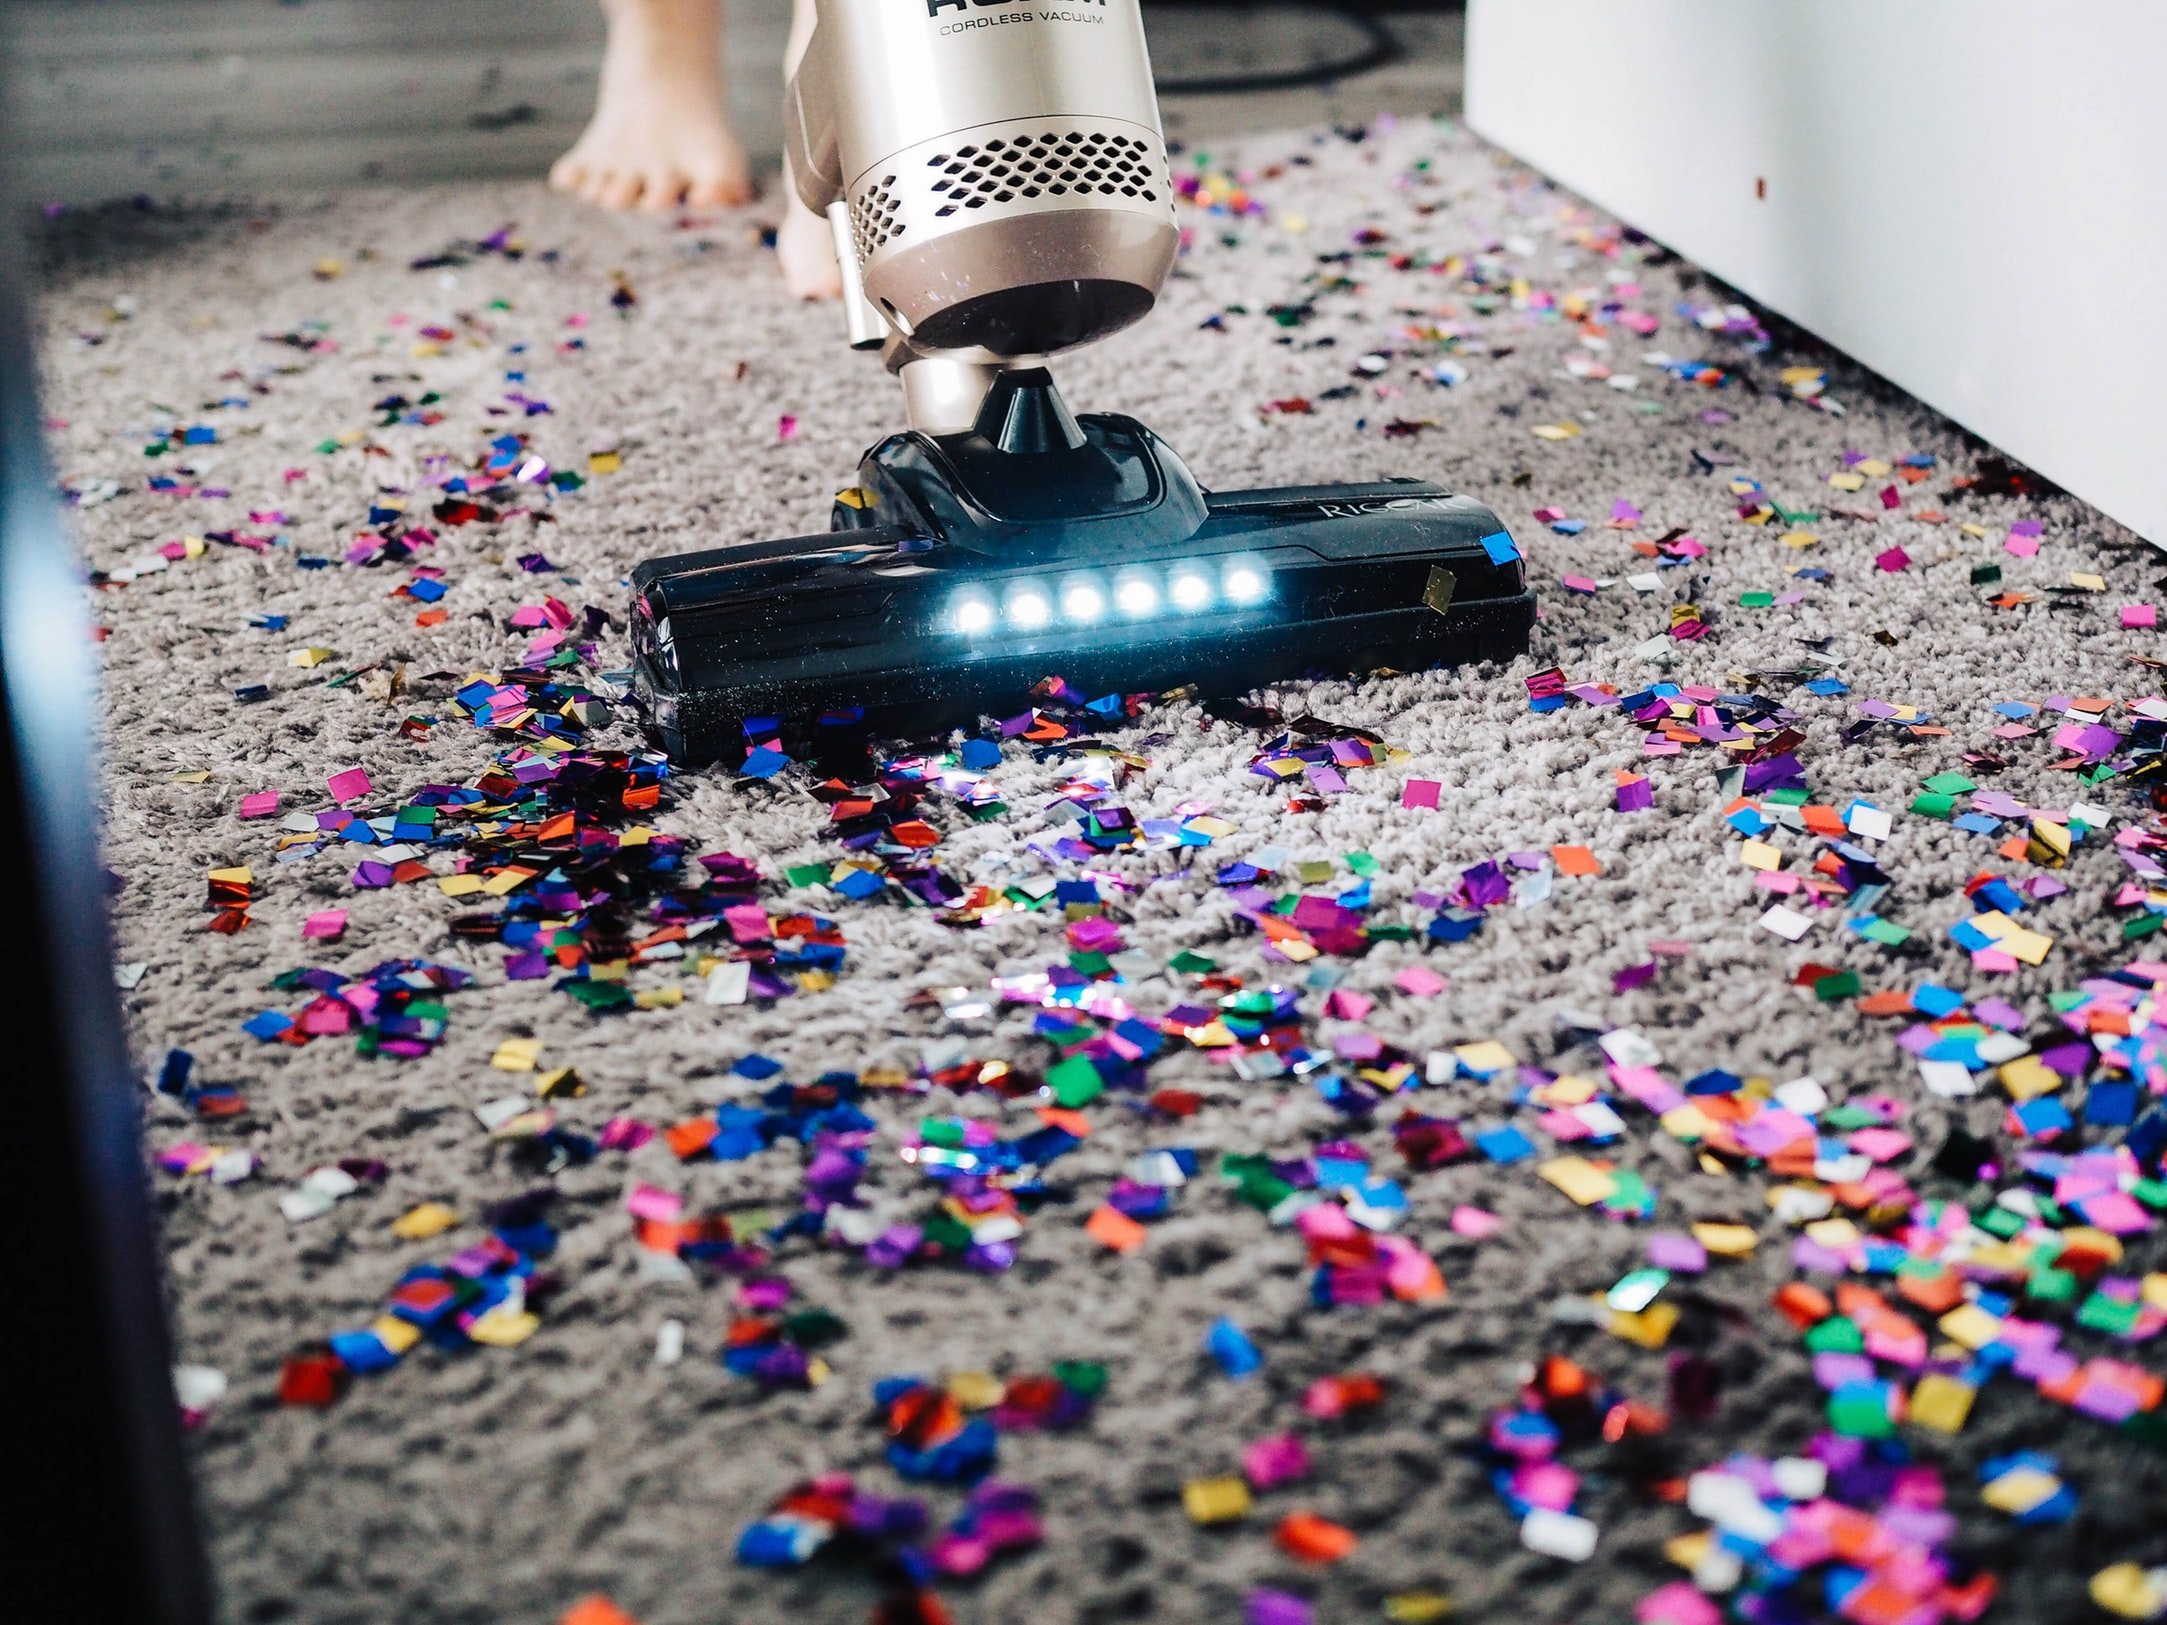 The 9 Best Carpet Cleaners to Buy in 2020